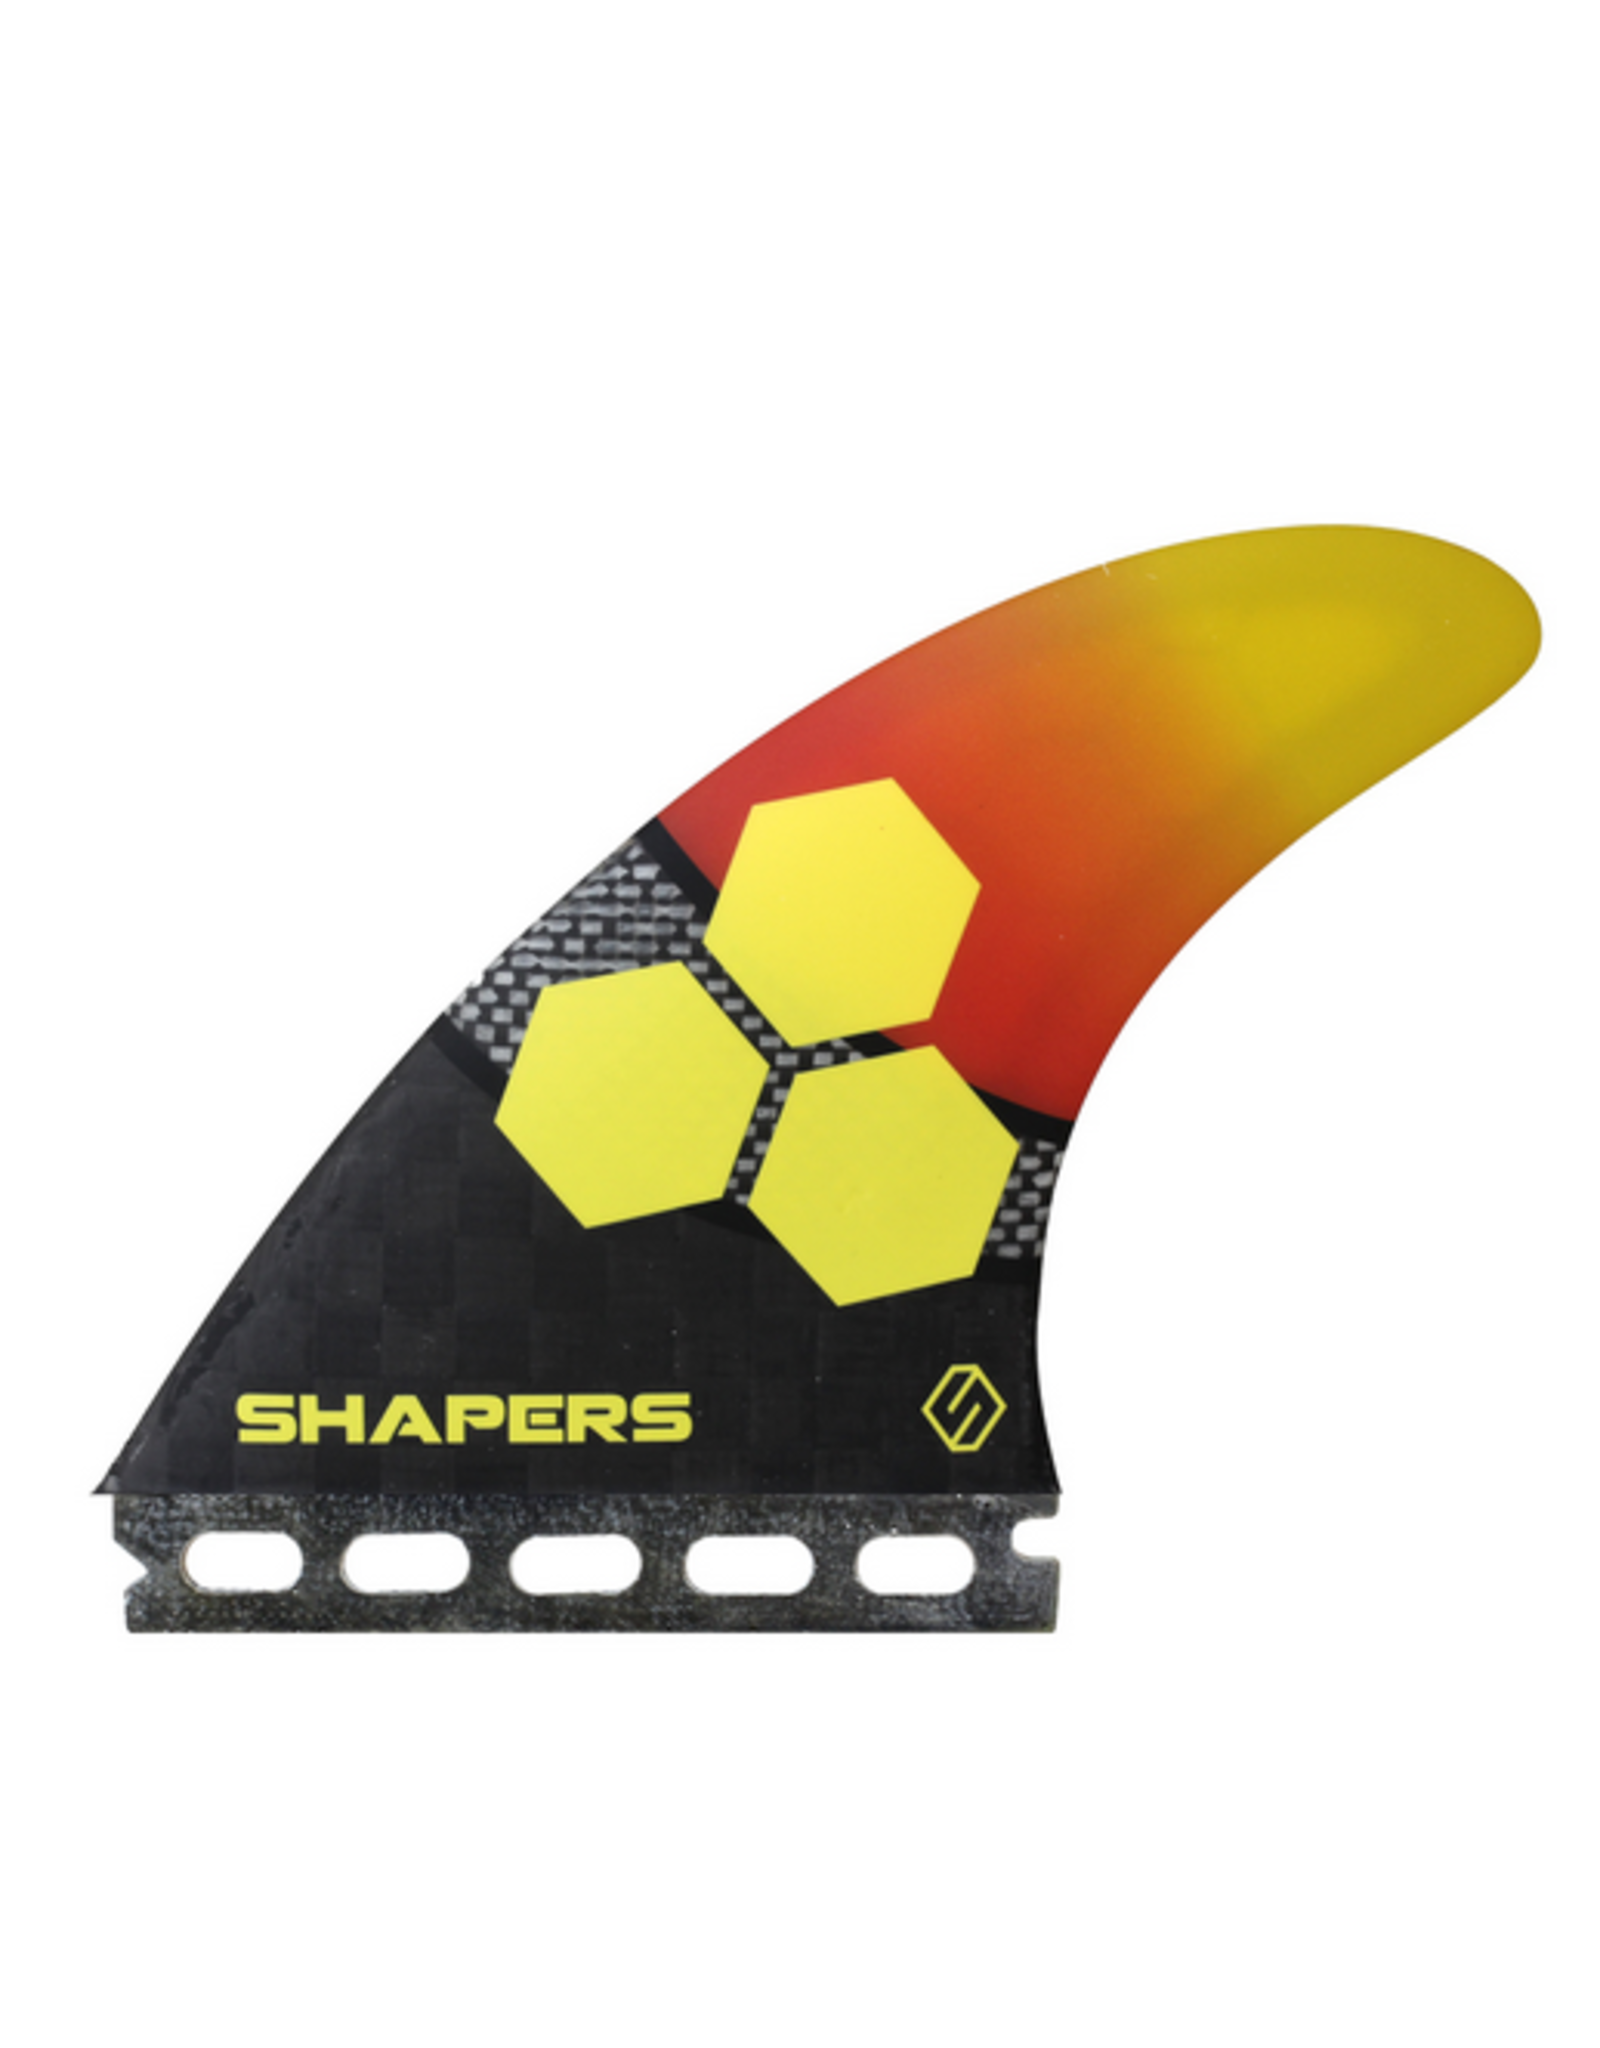 Shapers Shapers AM3 Spectrum Small Futures